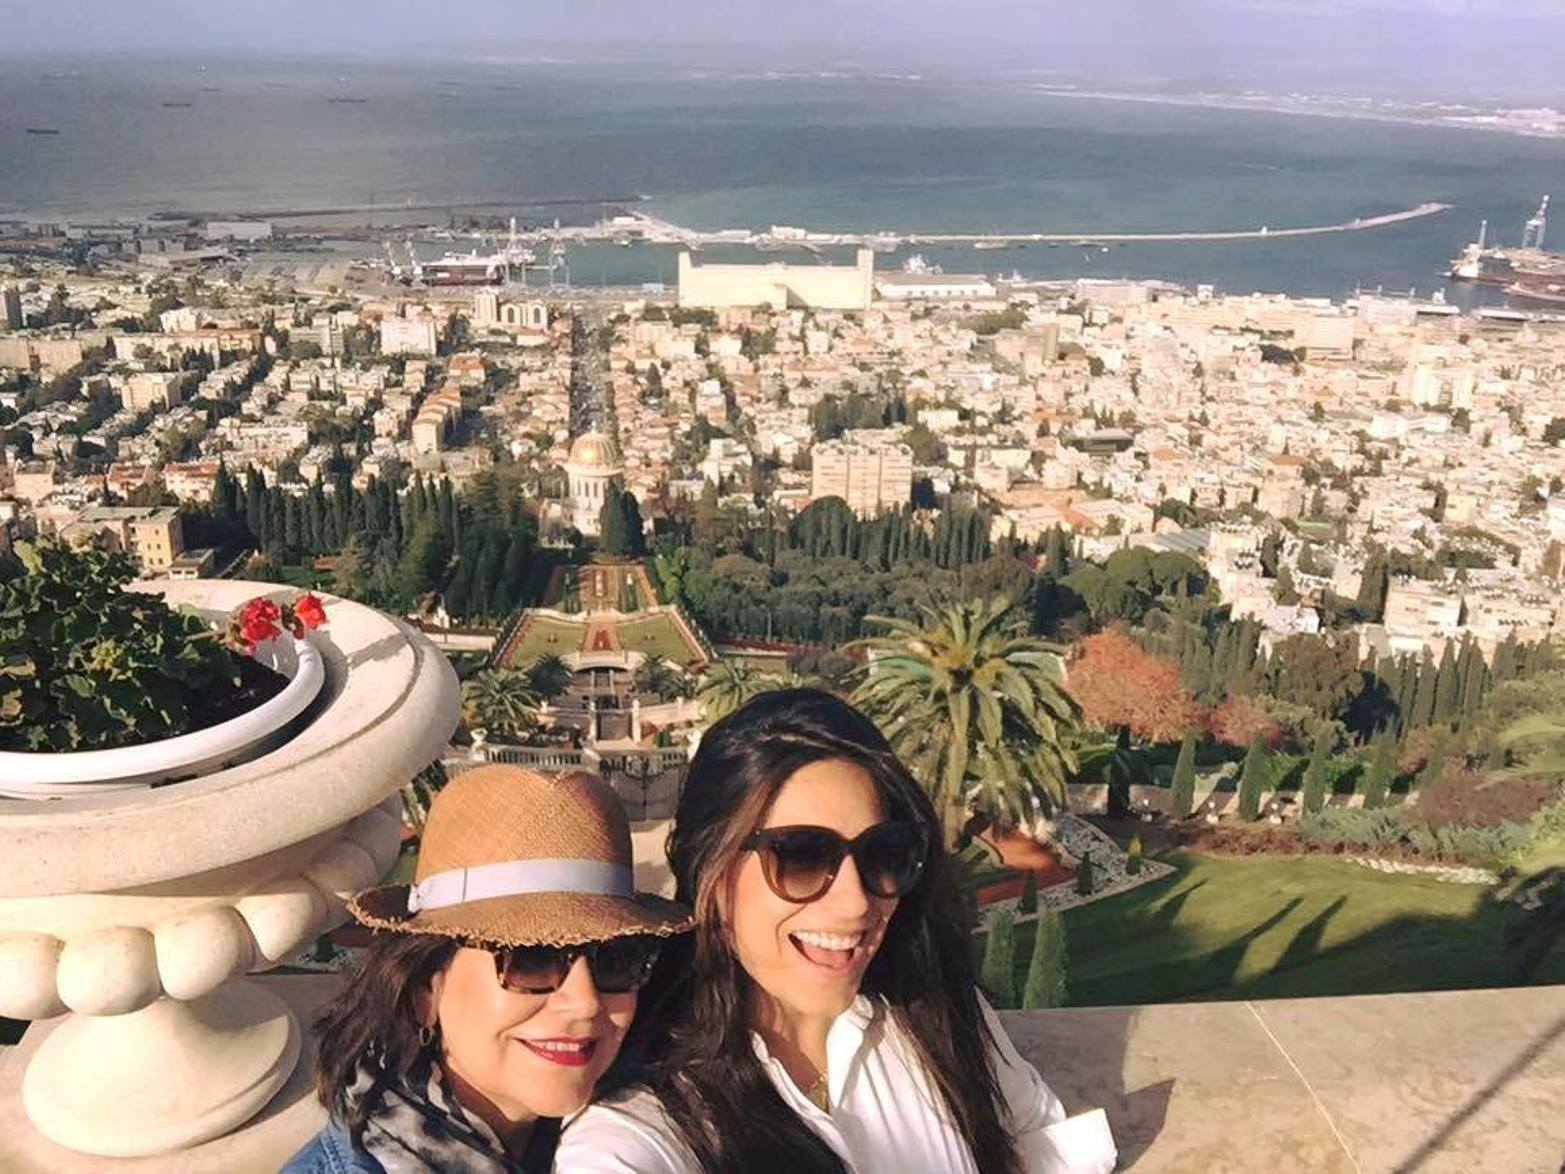 Ana Brenda Contreras took a selfie with her mother, Blanca, at Haifa's Baha'i Gardens. Photo via Facebook